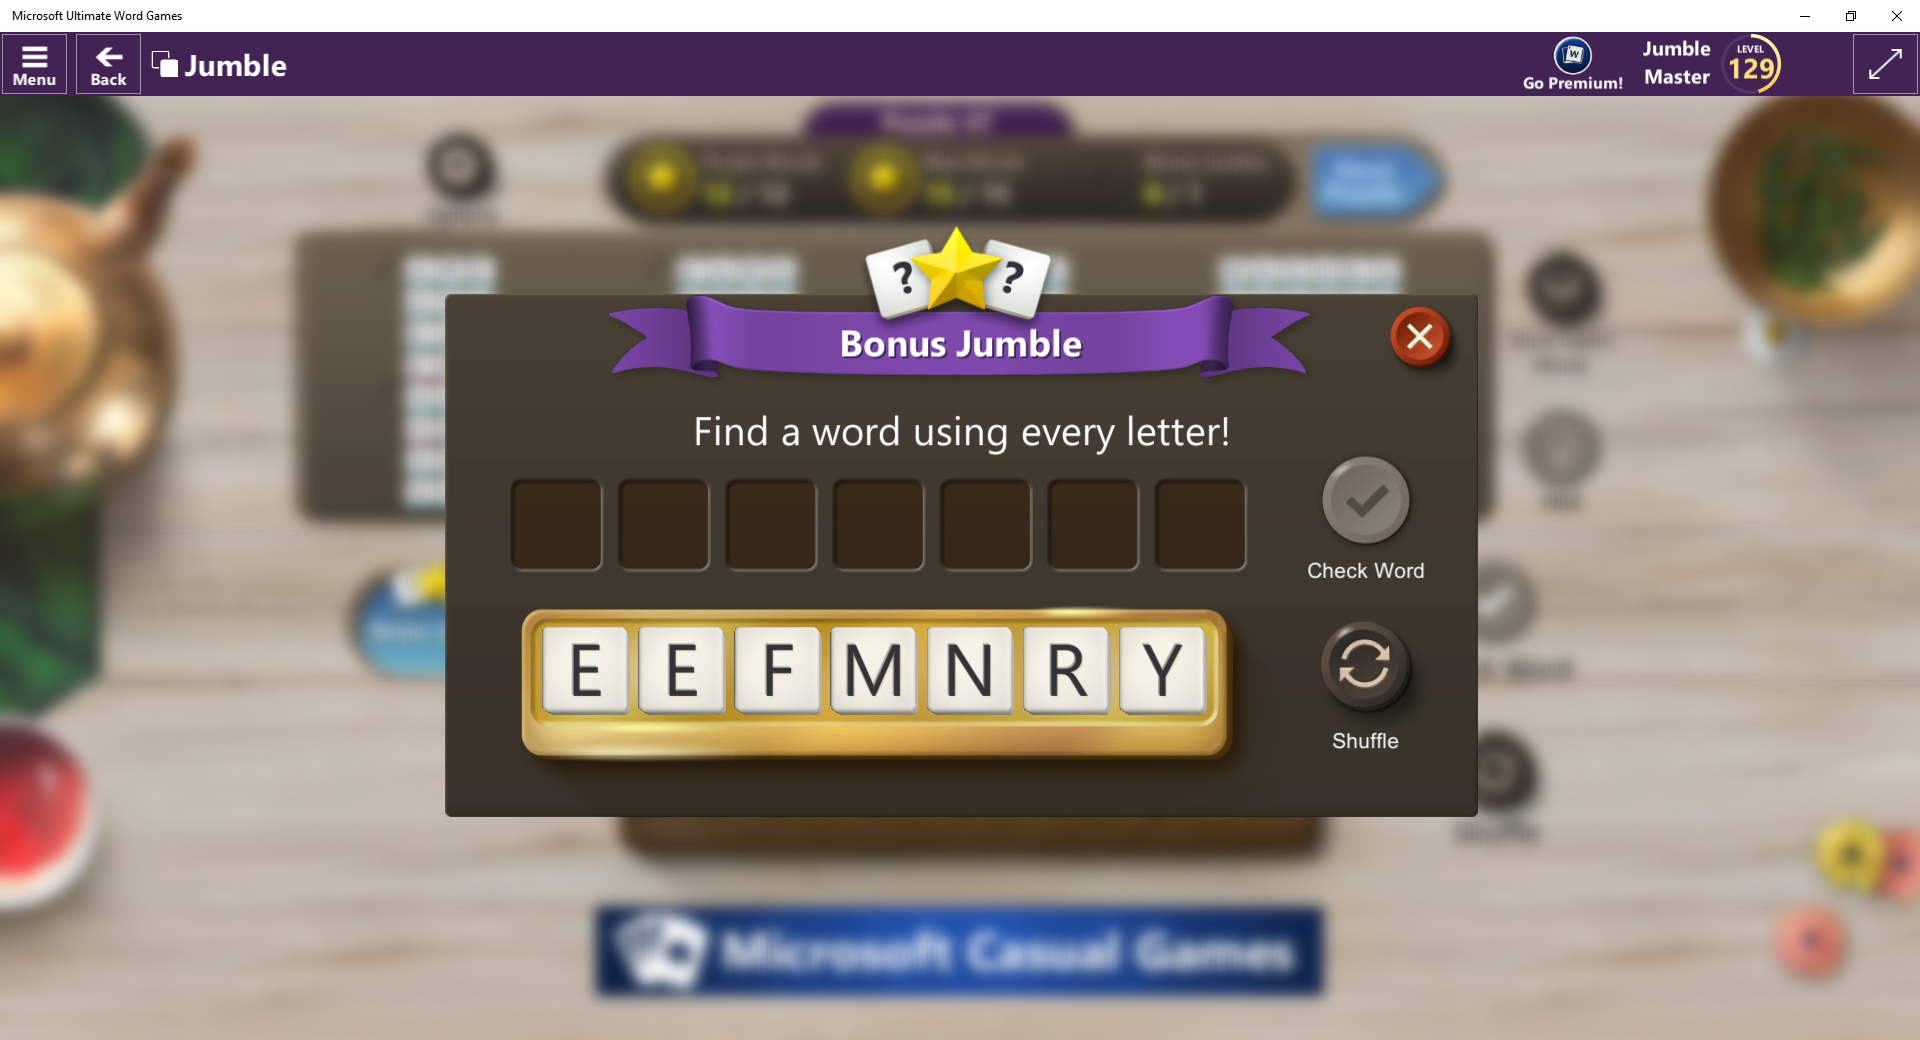 Microsoft Ultimate Word Games - Word Jumble puzzle unsolvable [IMG]